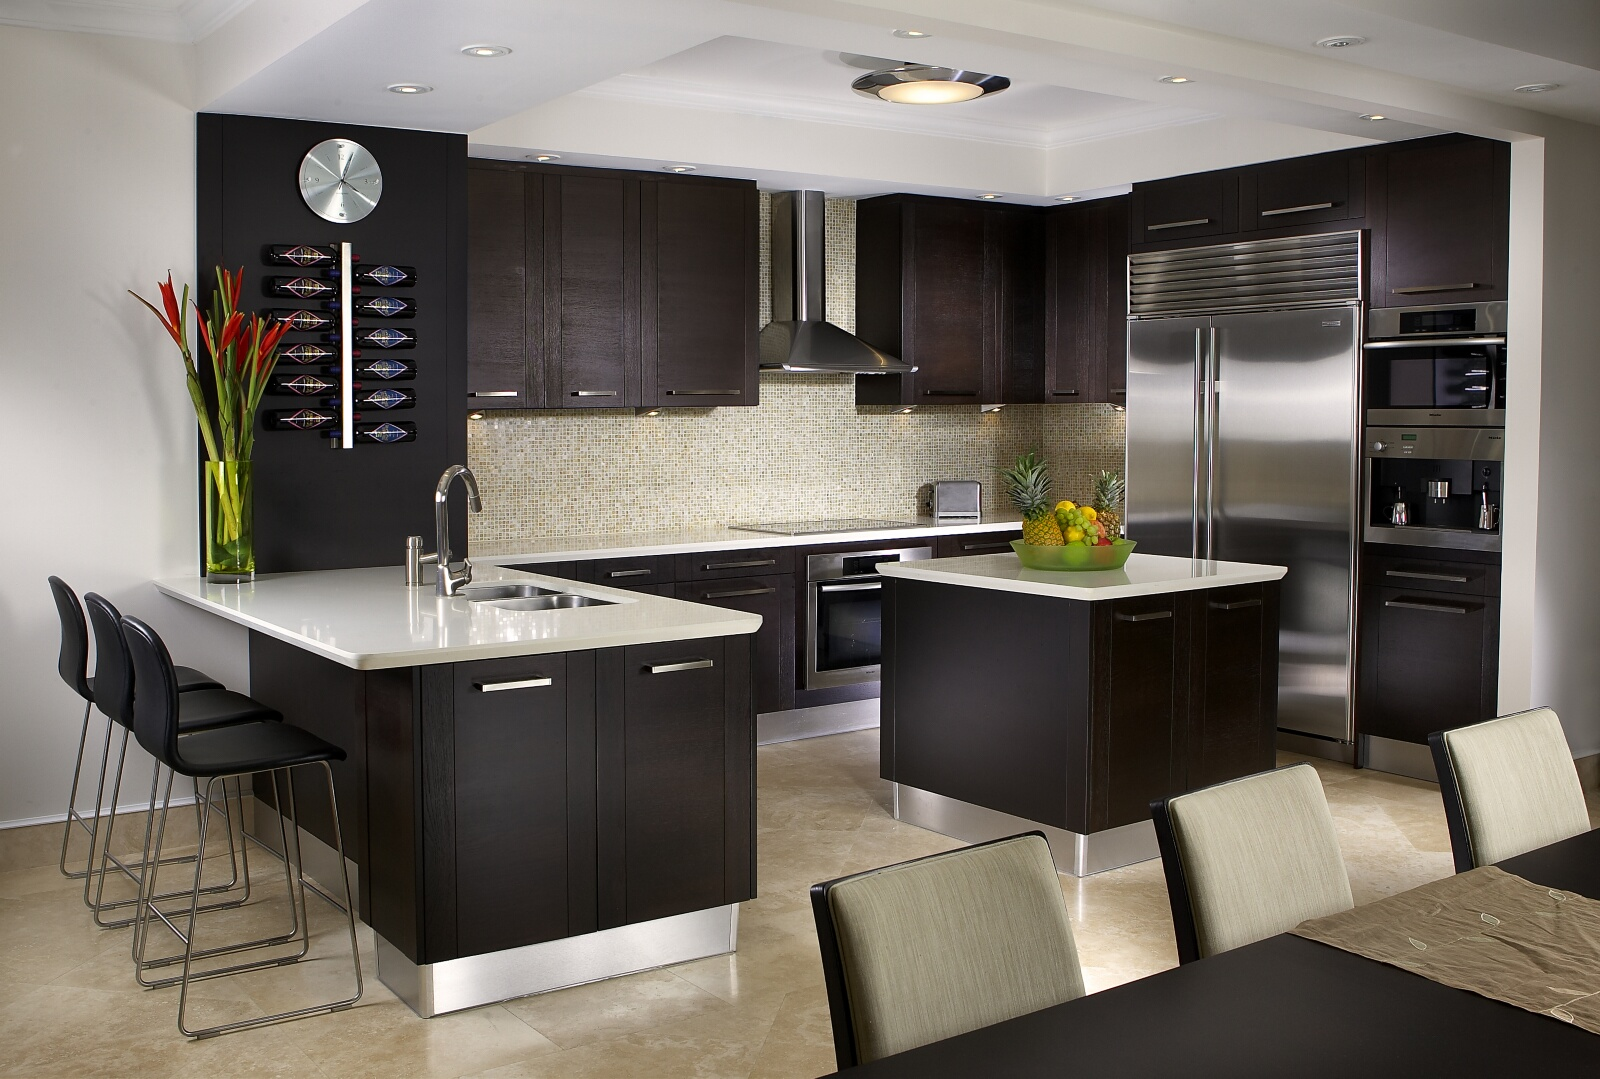 Kitchen interior design services miami florida - Kitchen interior desing ...